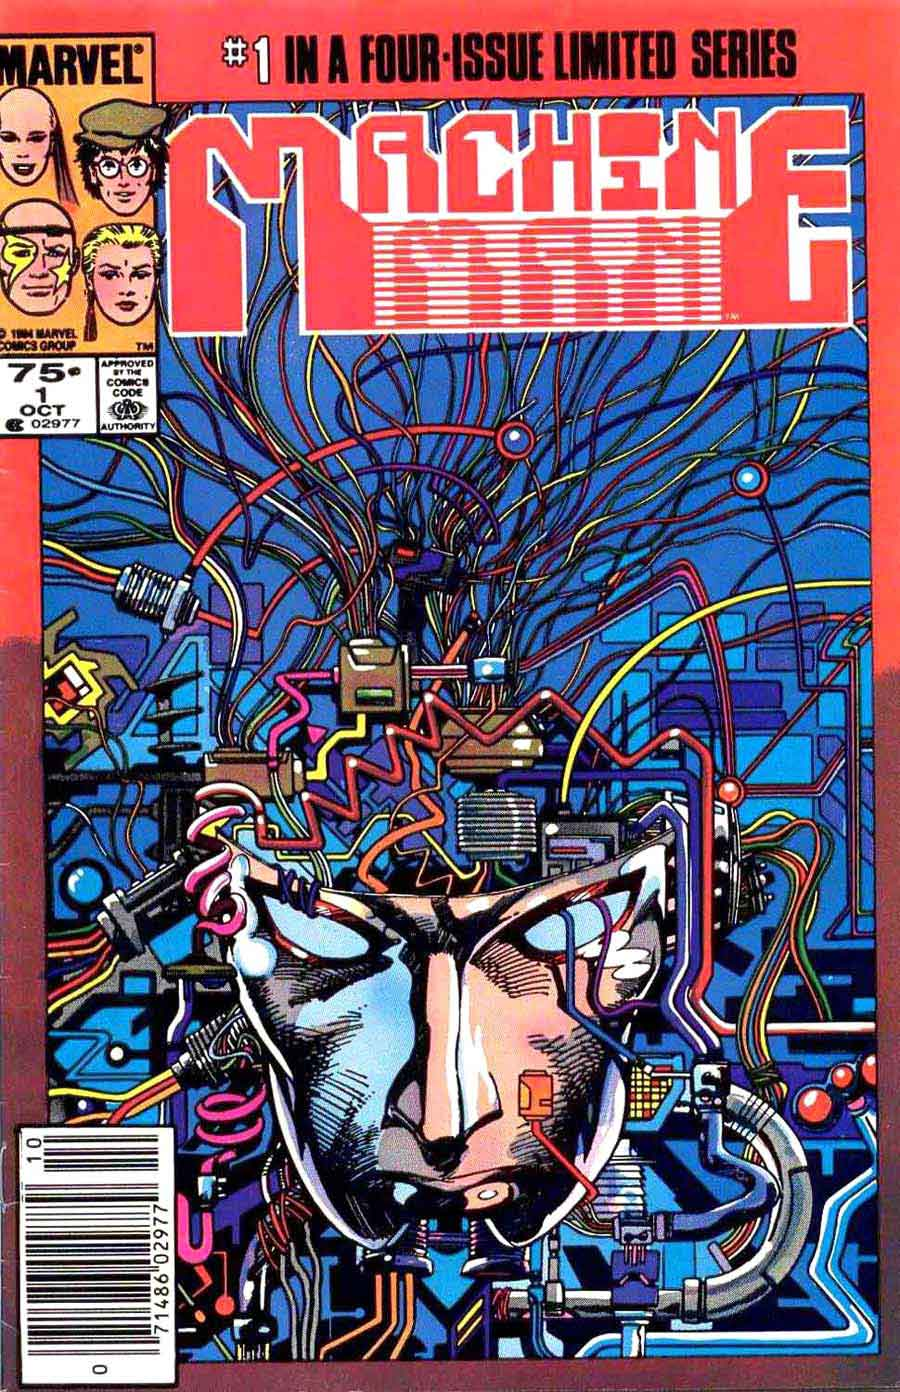 Machine Man v2 #1 marvel 1980s comic book cover art by Barry Windsor Smith